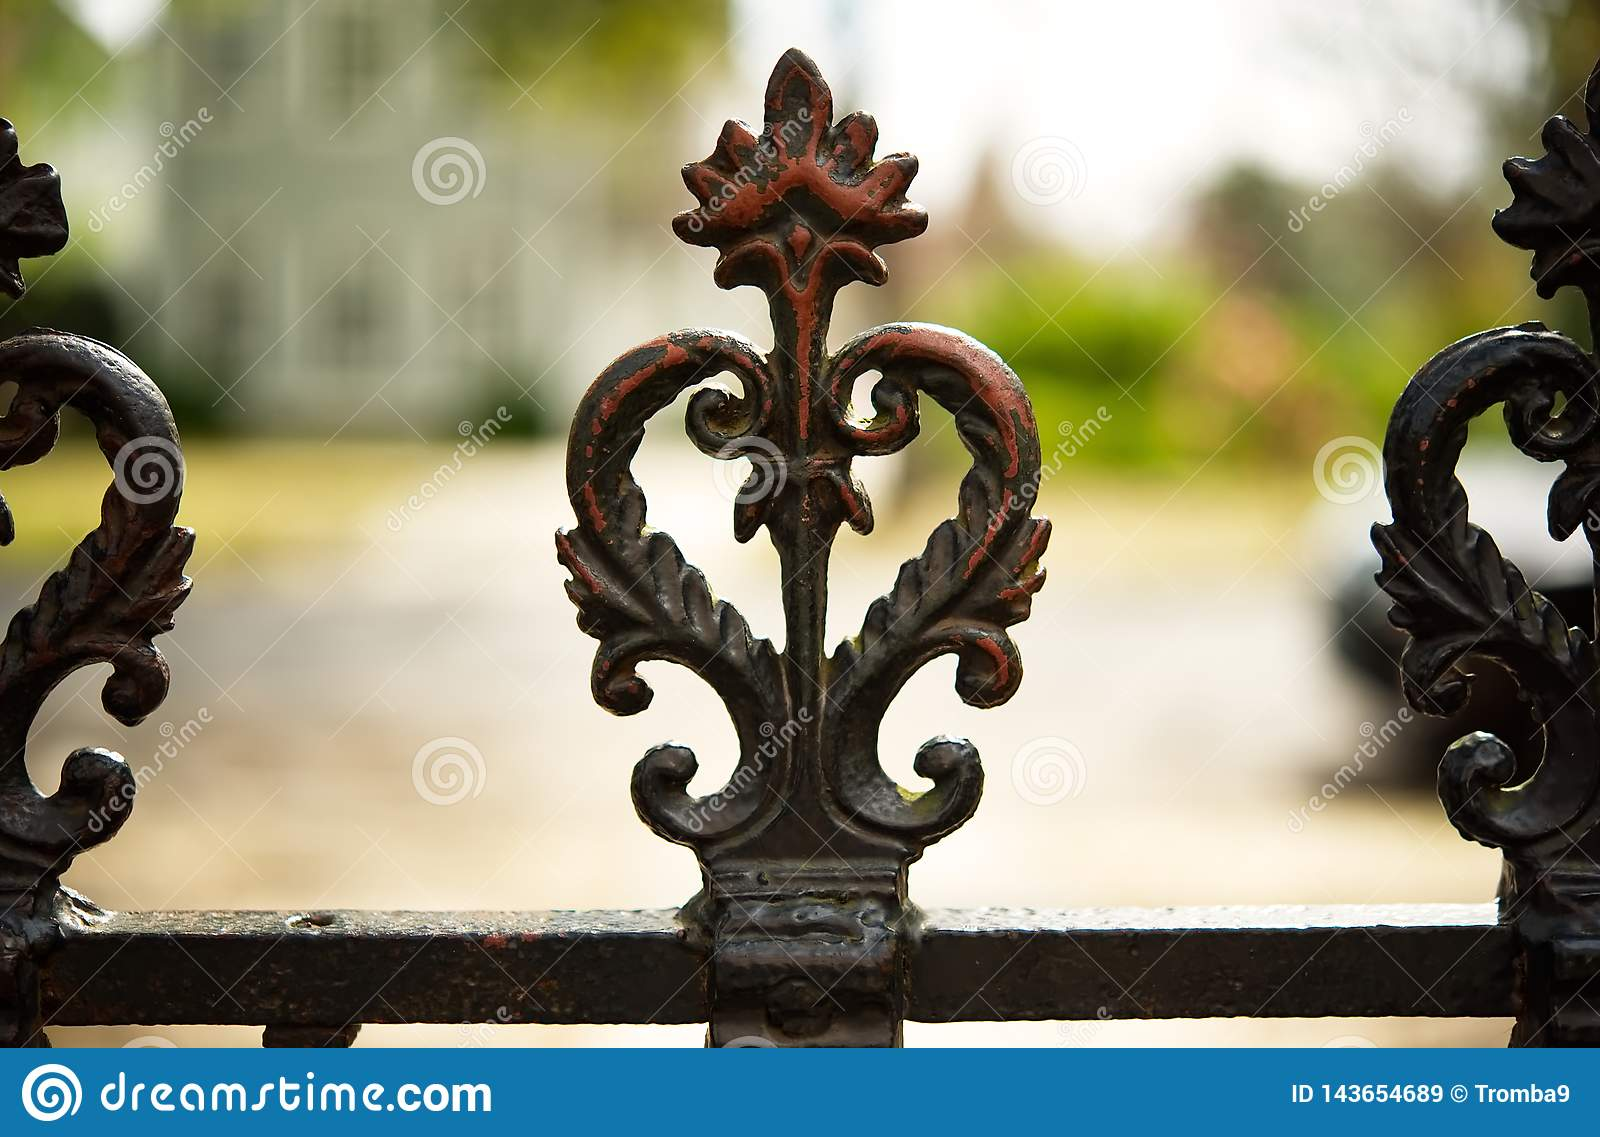 A closeup of the top of a wrought iron fence in Georgetown, SC.